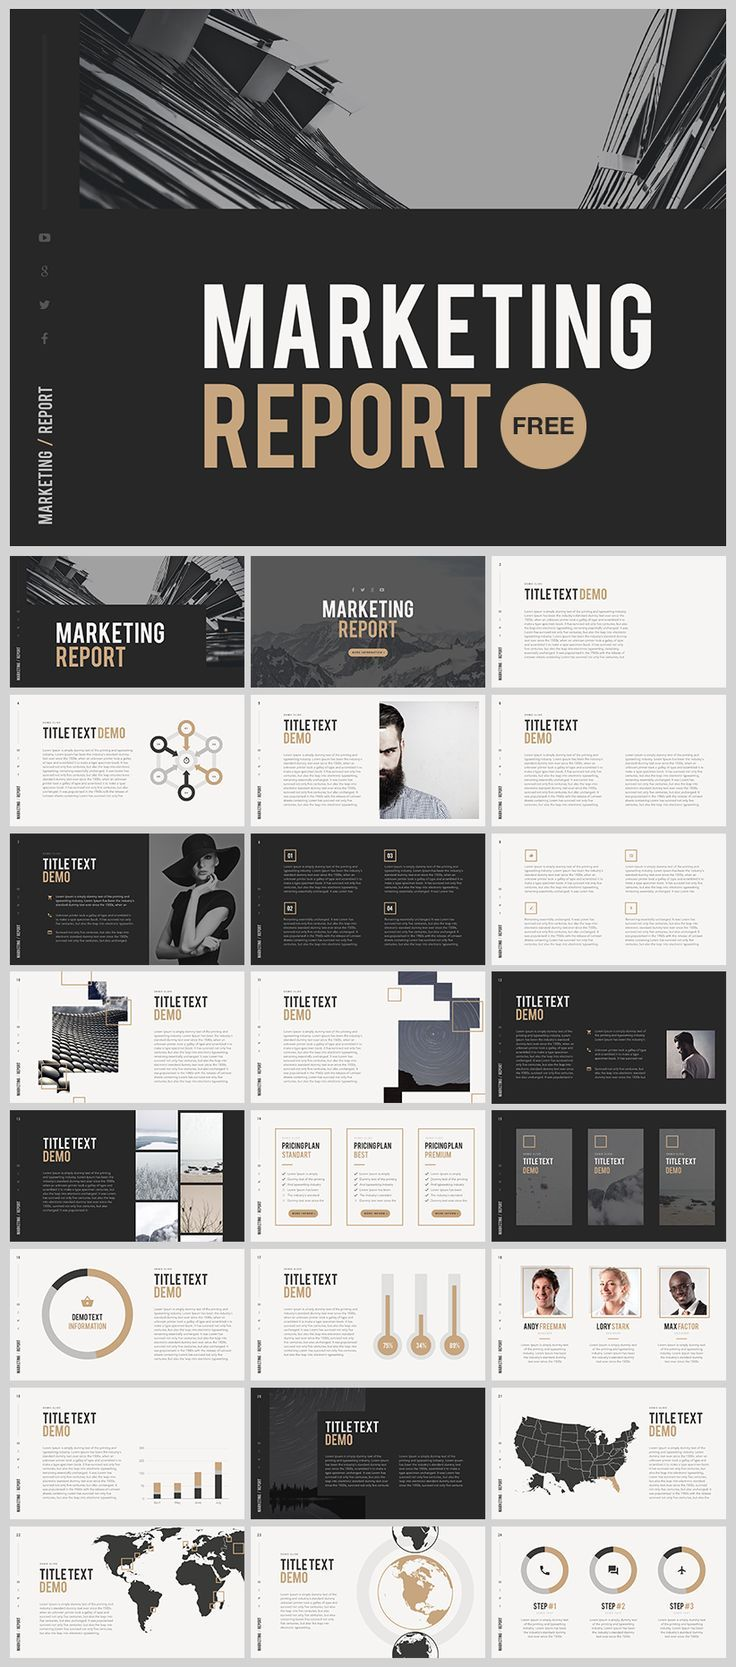 Marketing Report Template Powerpoint 351 best Corporate